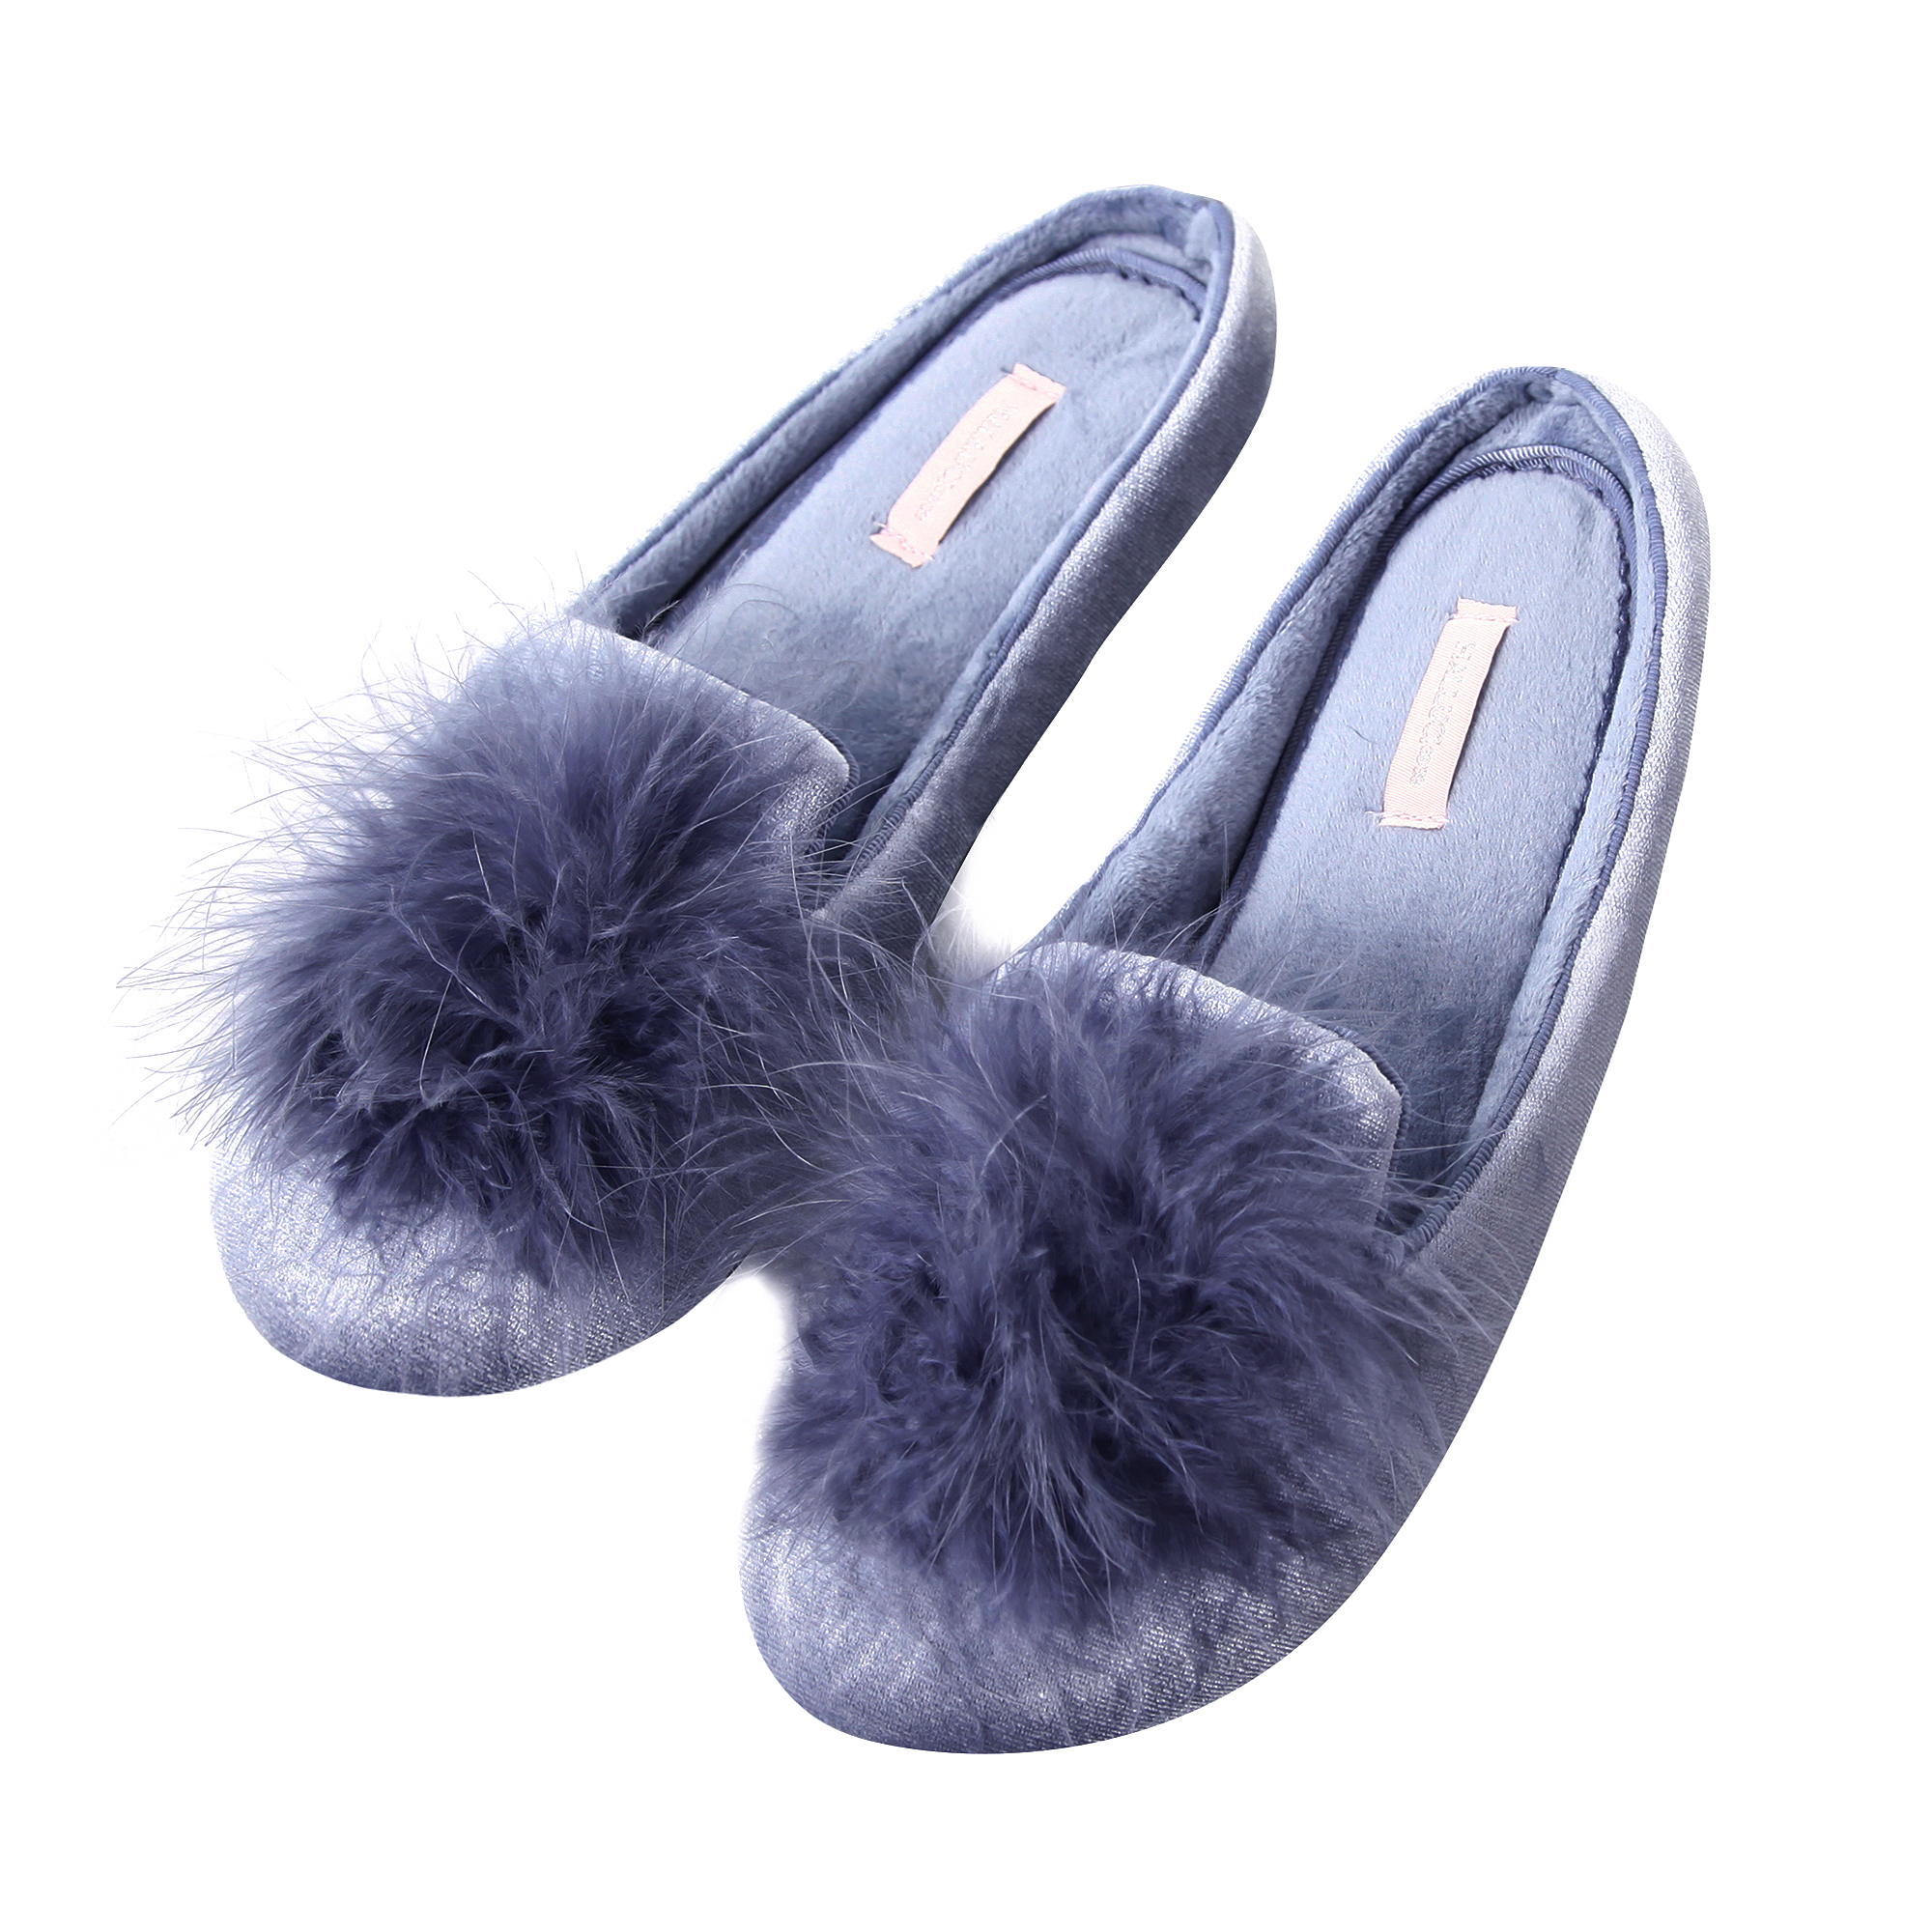 Light Curly Spirals House Slippers